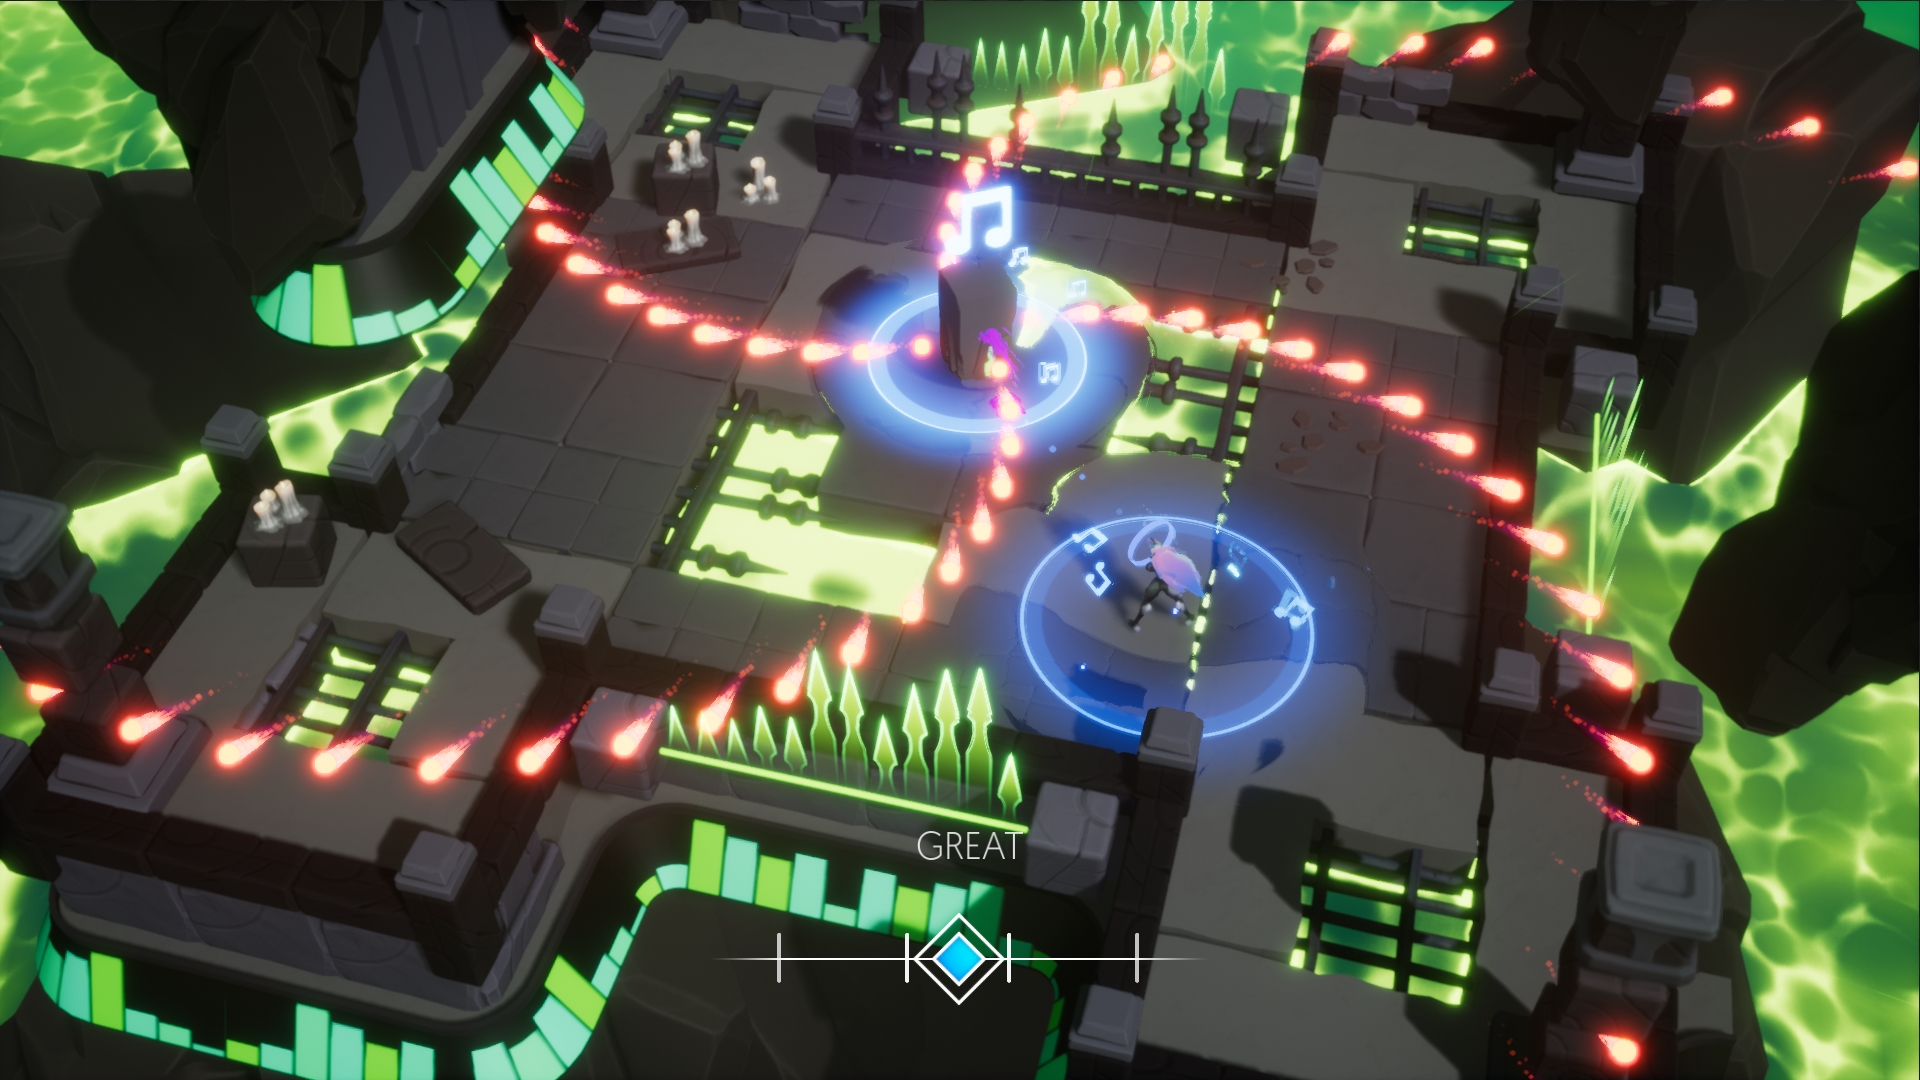 Musical Shooter Soundfall Seems To Be Like Nex Machina By The Use